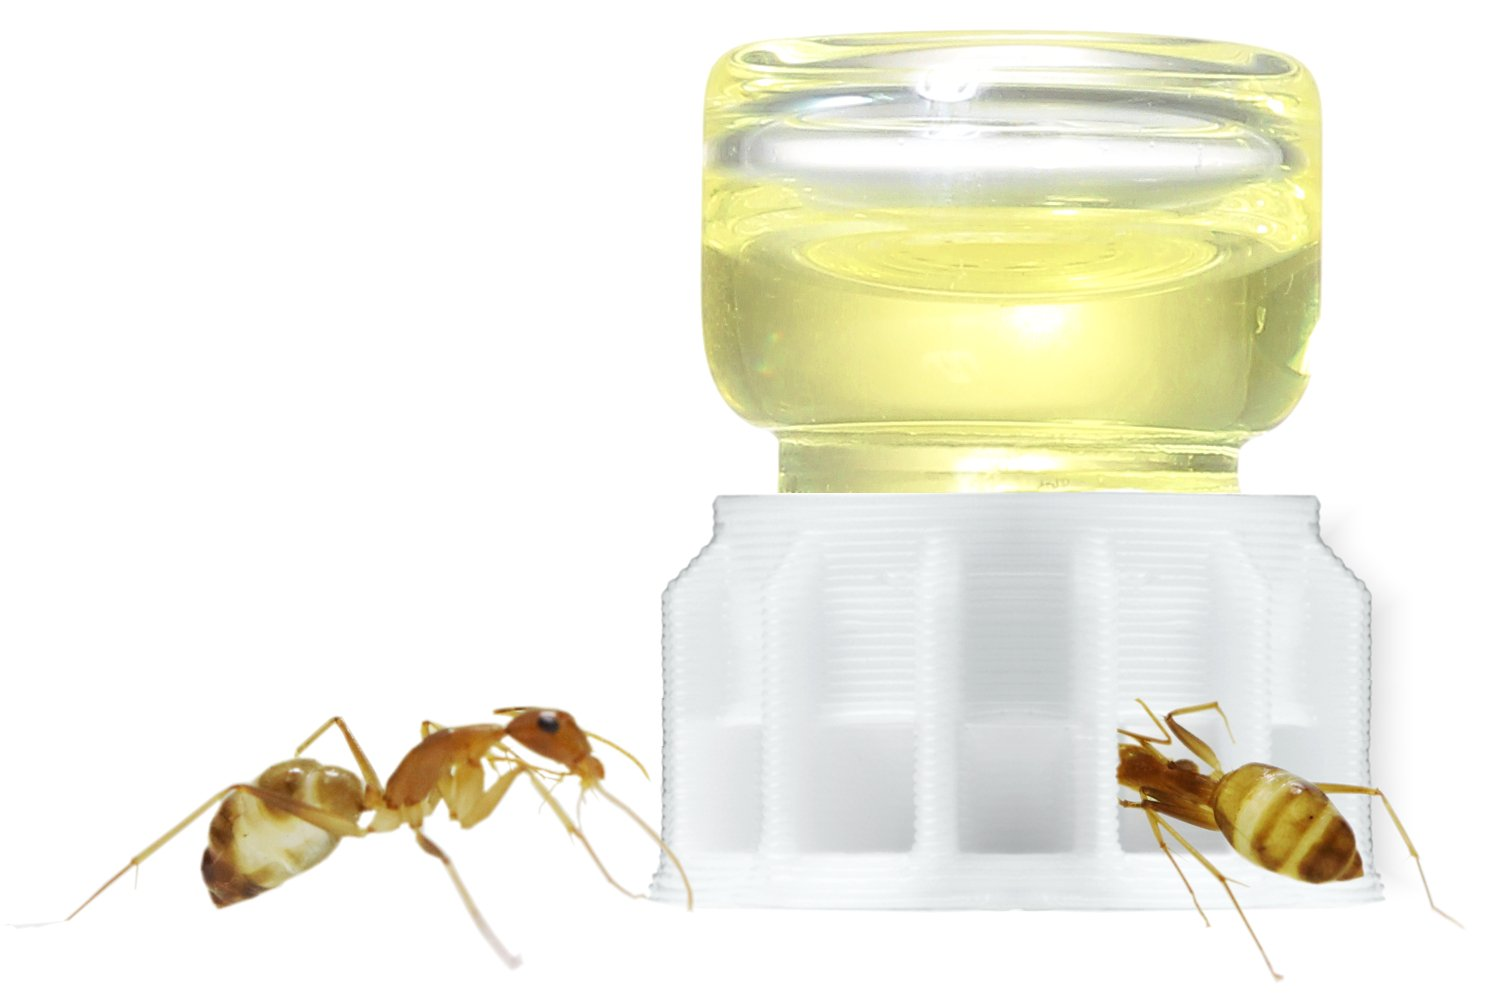 byFormica Liquid Feeder MICRO Feeder for Ants: For Water, Sugar Water, or Ant Nectar (1 ml (Qty 17)) byFormica Ant Products